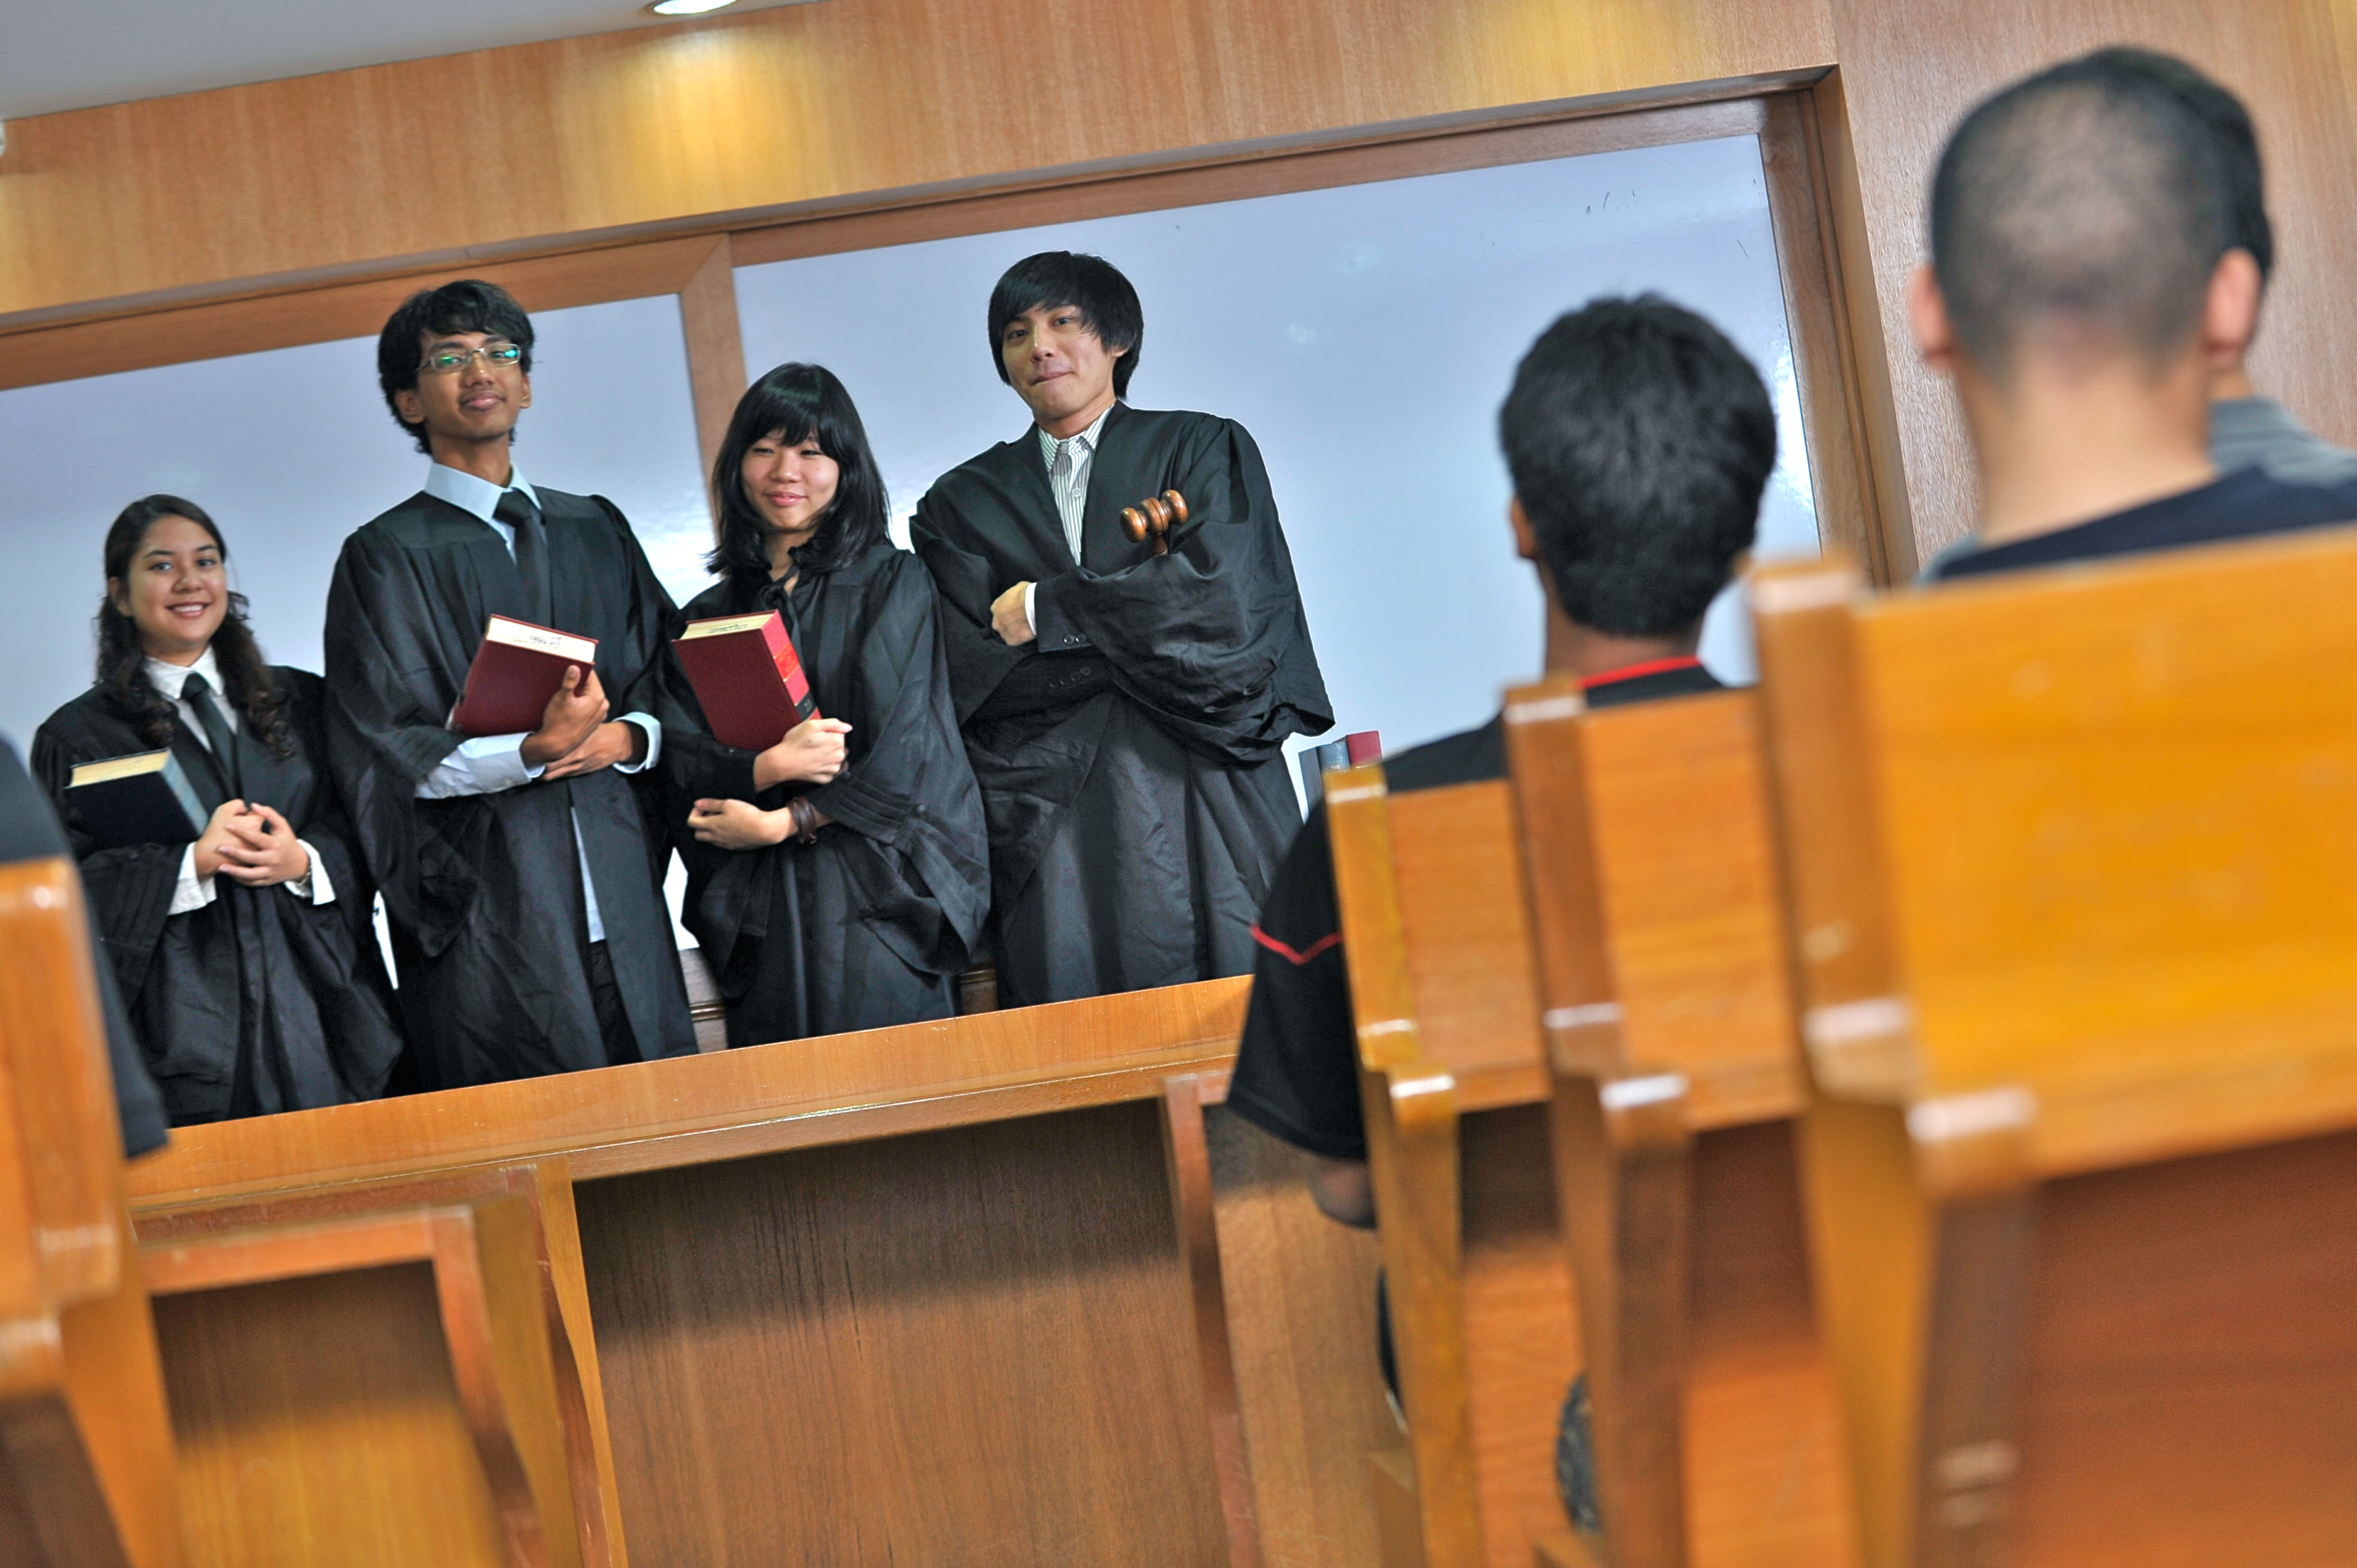 Court Reporting subjects to transfer from a college to a university for international student